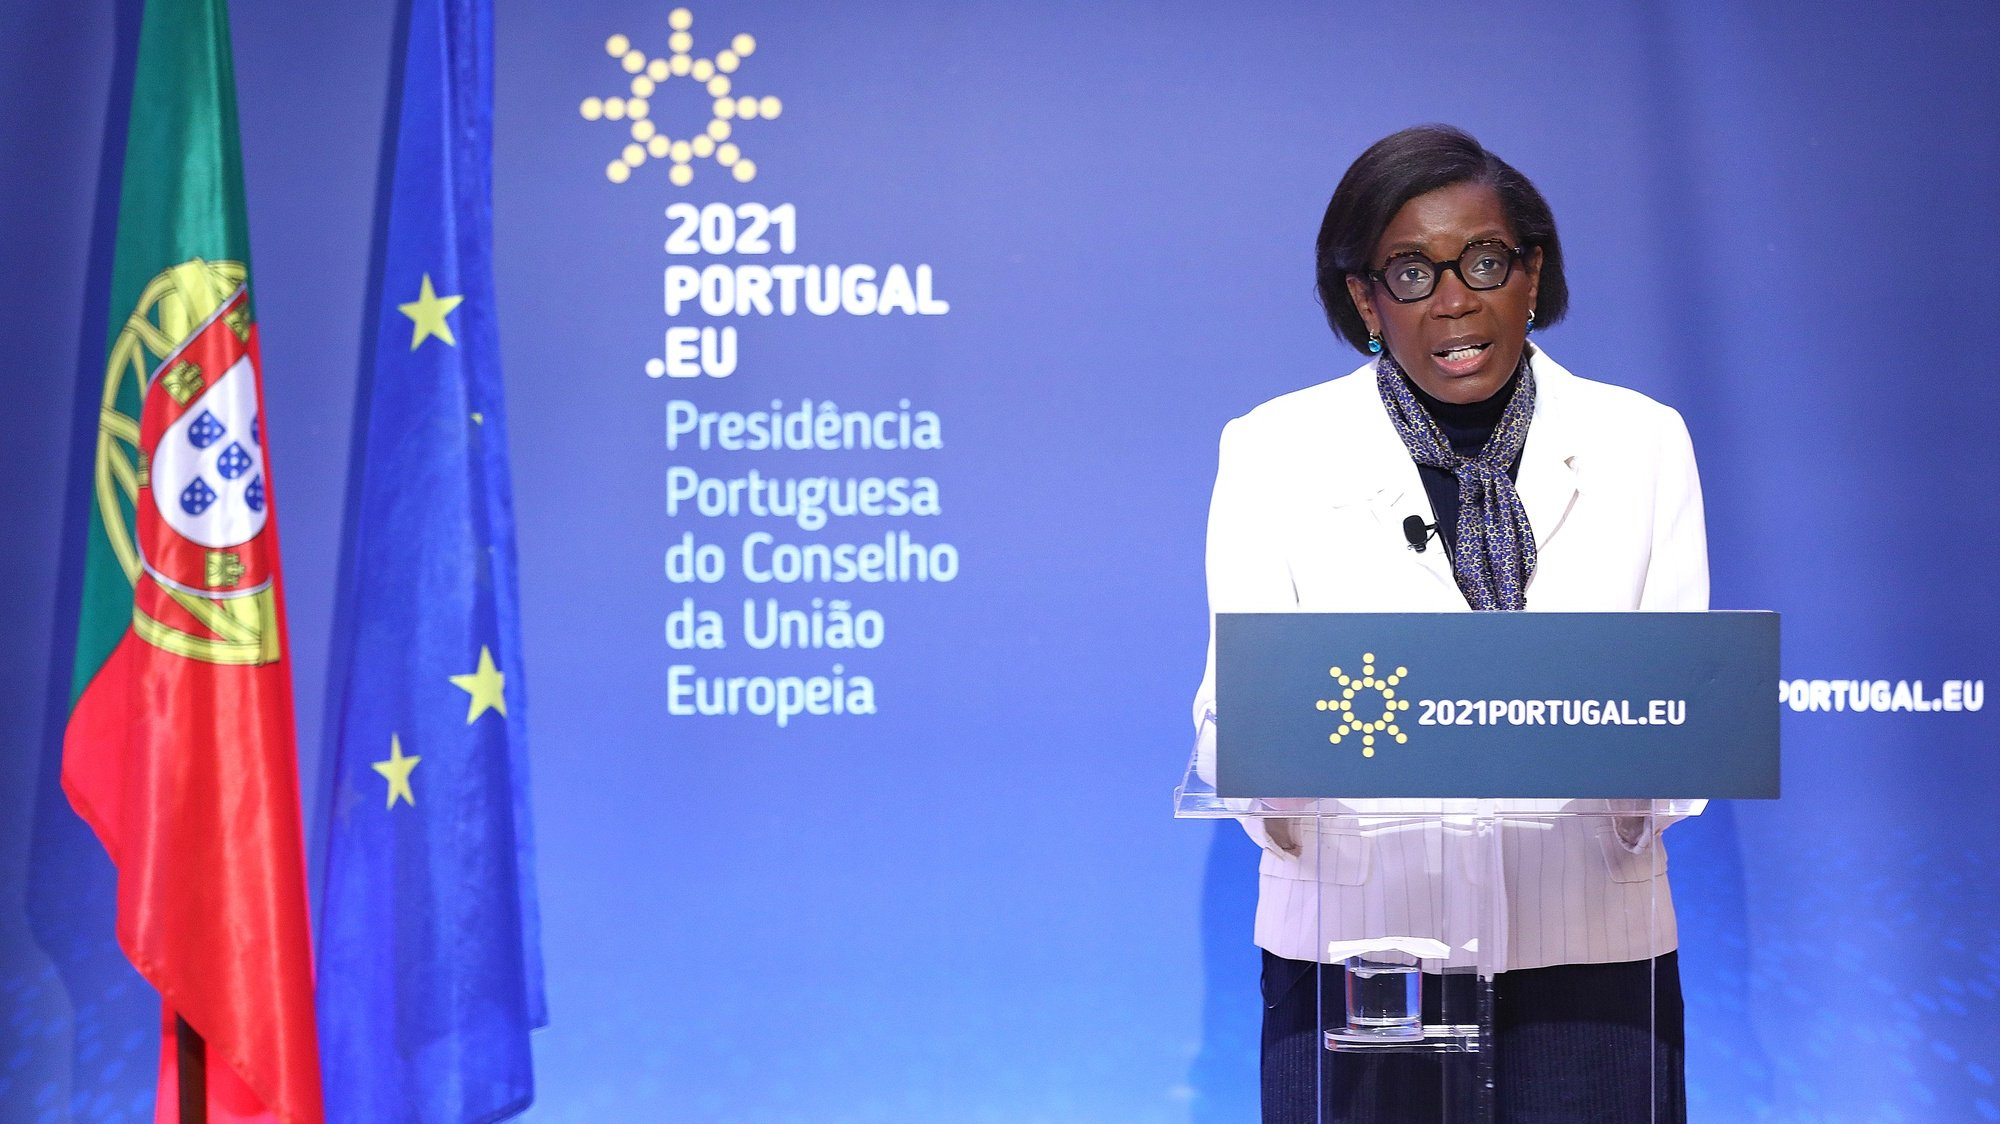 epa09003511 PortugueseMinister of JusticeFrancisca Van Dunem attends to a High Level Conference on the topic of 'The Intellectual Property Metamorphosis in the Age of Digital Transition' under the Portuguese Presidency of the Council, in Lisbon, Portugal, 11 February 2021. According to the organizers, nationally and internationally renowned persons in the area of intellectual property and innovation will give their views on the future challenges of intellectual property in the age of digital transformation.  EPA/ANTONIO PEDRO SANTOS